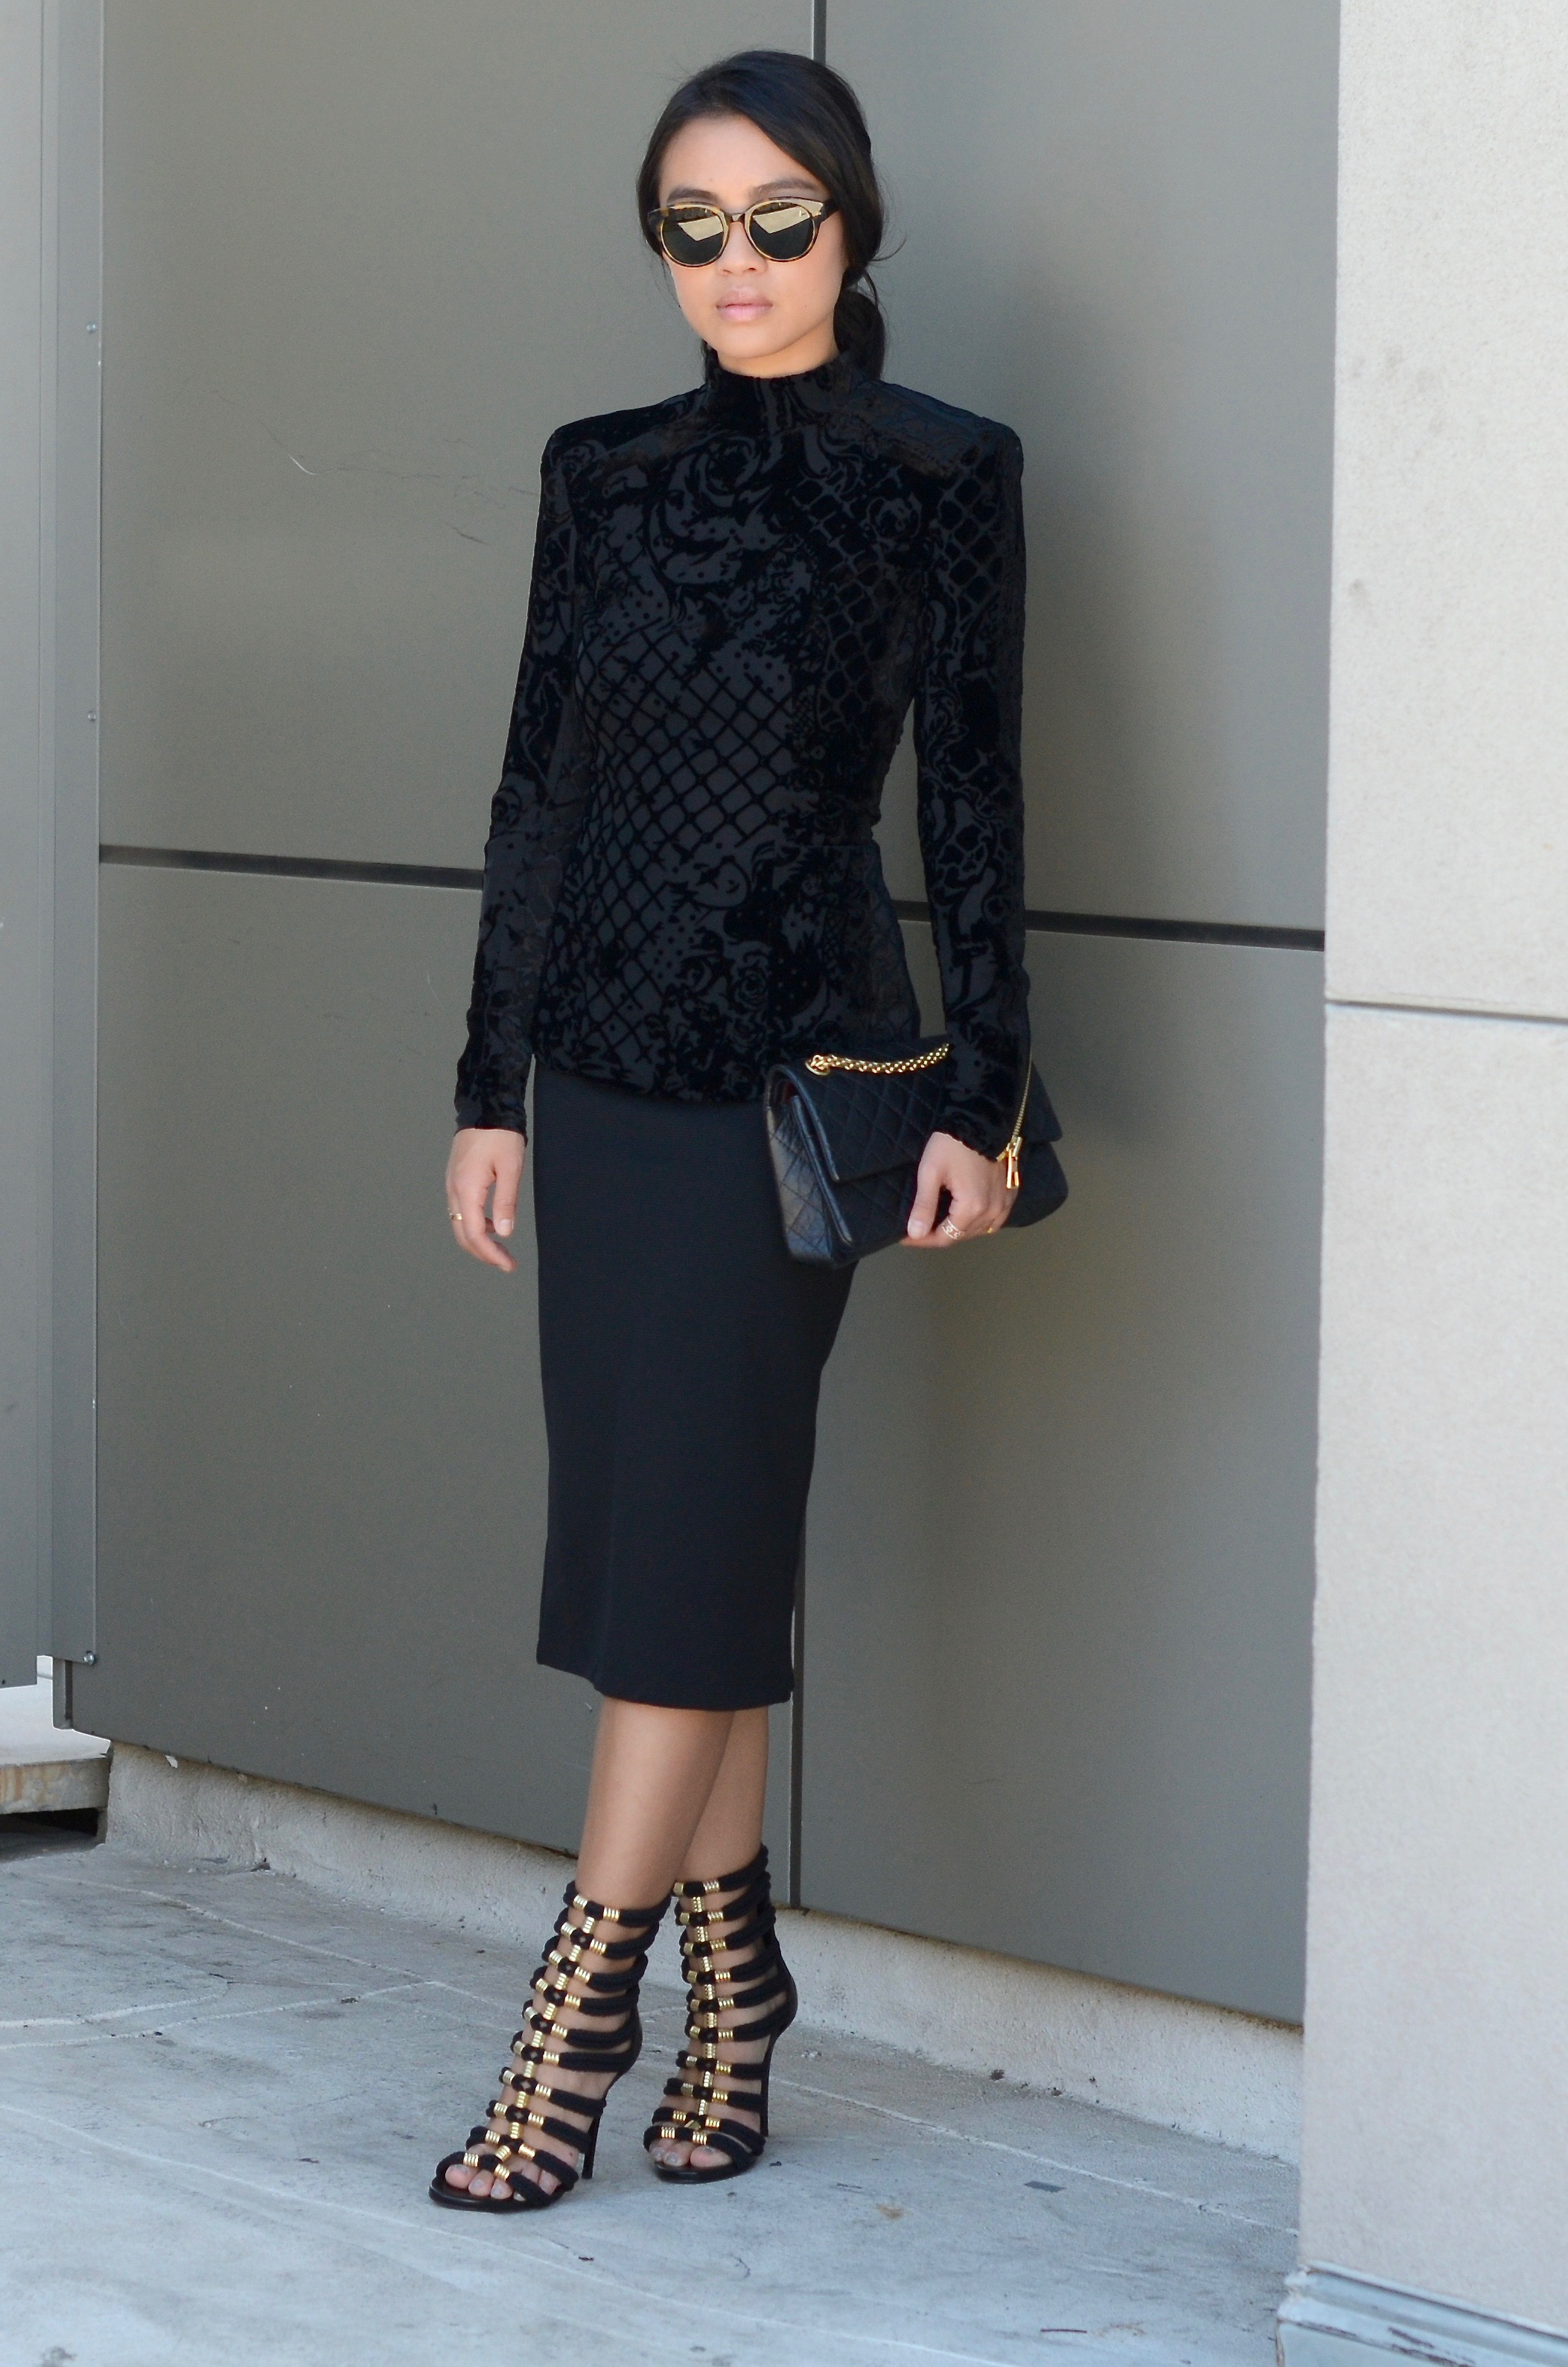 Just Goh With It-Outfit-Black-HM-Balmain-velvet-Turtleneck-gold-strappy-sandals-skirt-chanel-8.jpg